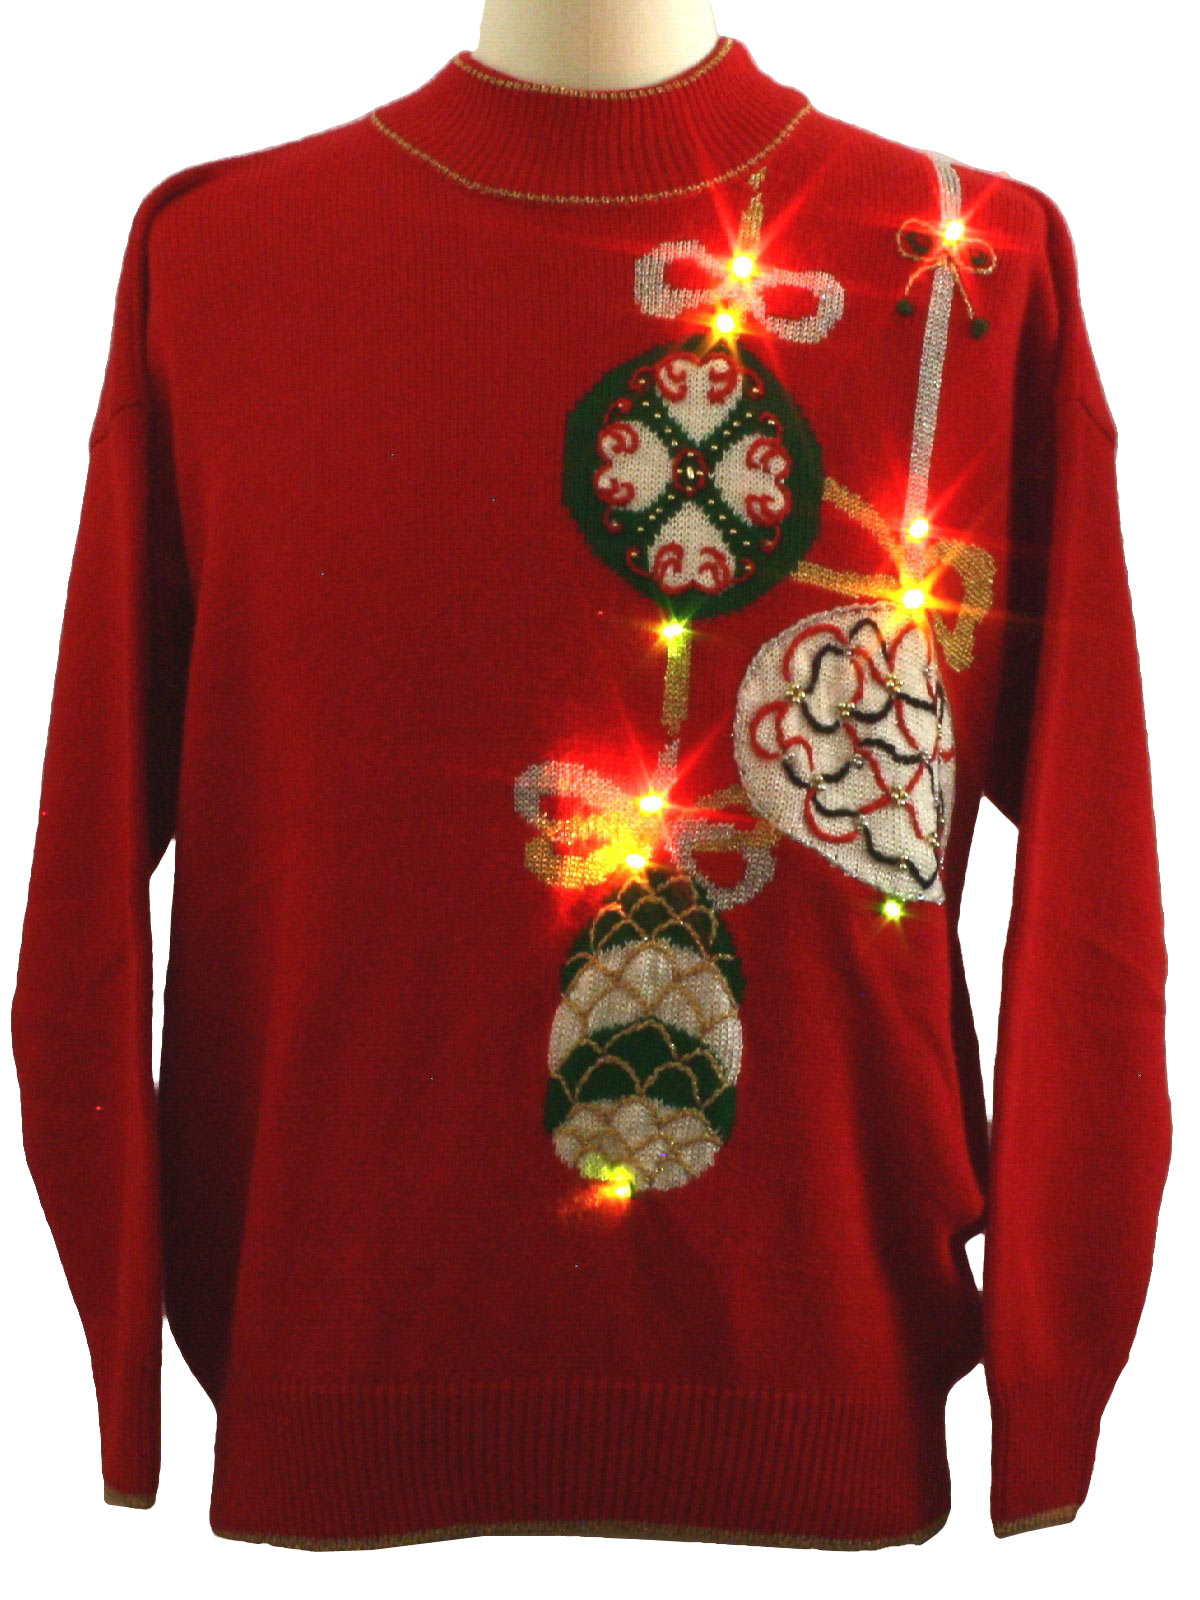 ugly lightup christmas sweater retro look dana scott unisex red background acrylic blend longsleeve multicolored flashing lightup pullover ugly christmas